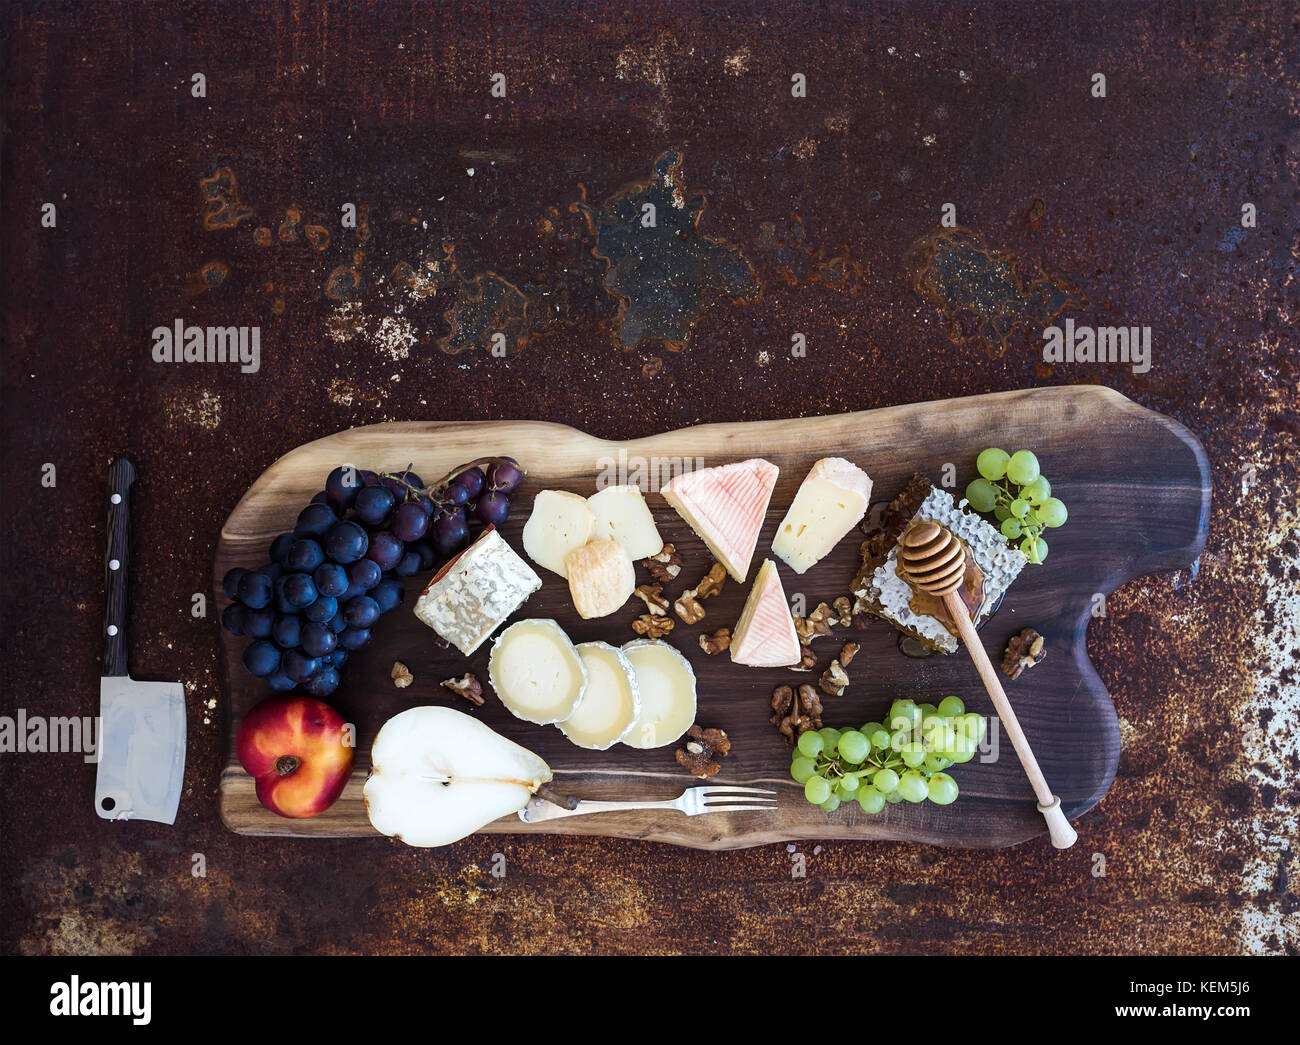 Wine appetizers set: French cheese selection, honeycomb, grapes, peach and walnuts on rustic wooden board over dark - Stock Image